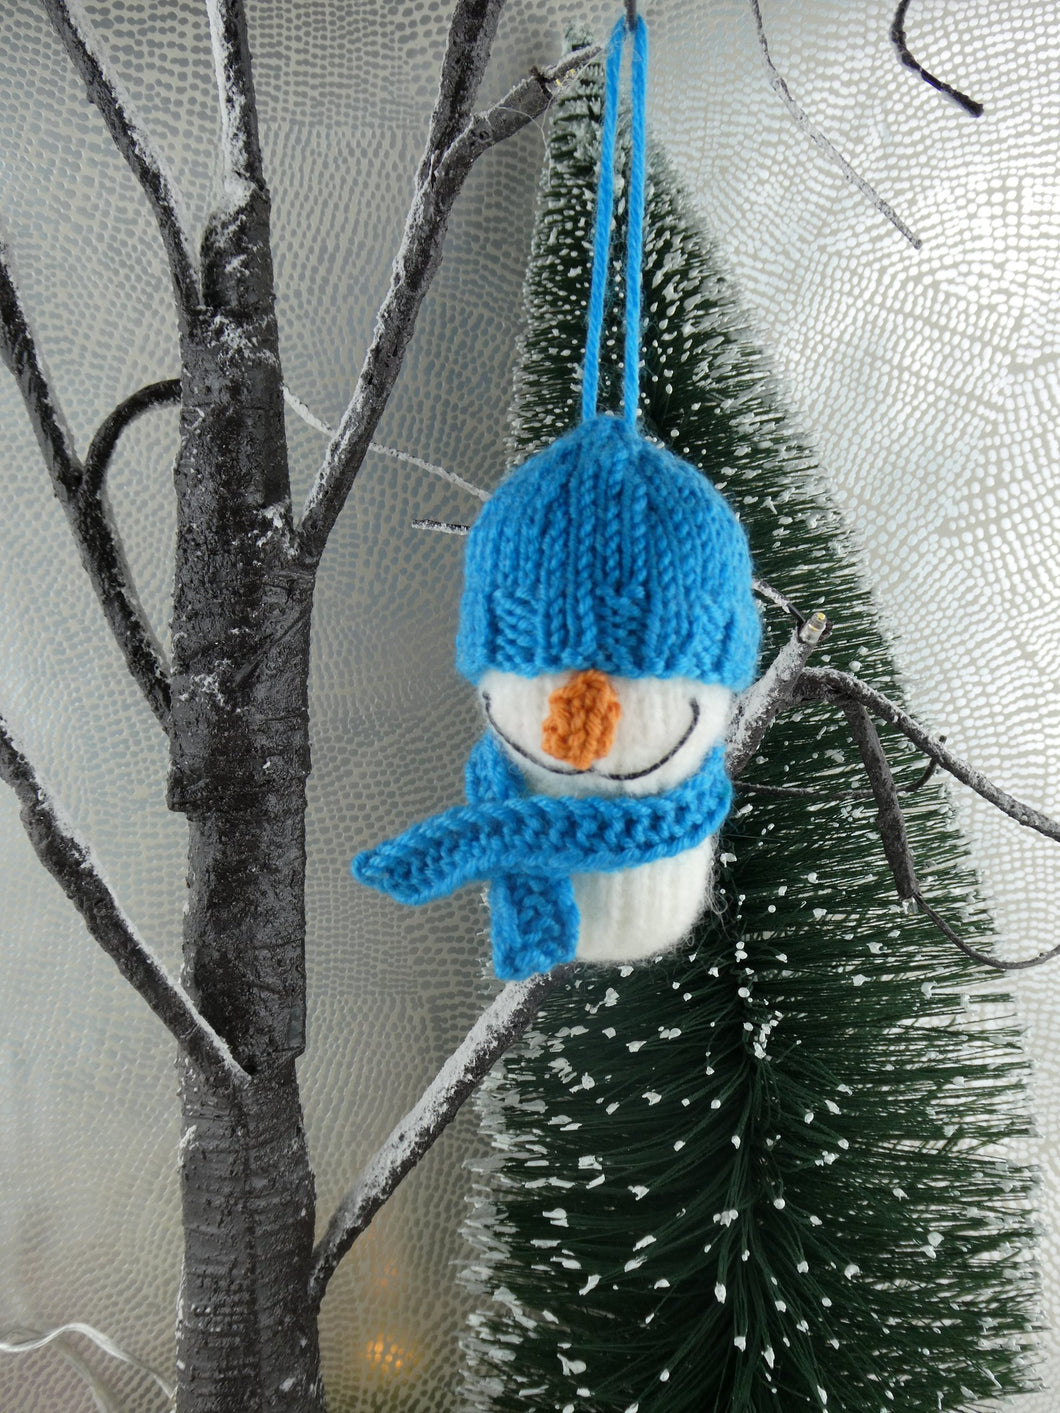 Knitted Snowman Christmas tree decoration